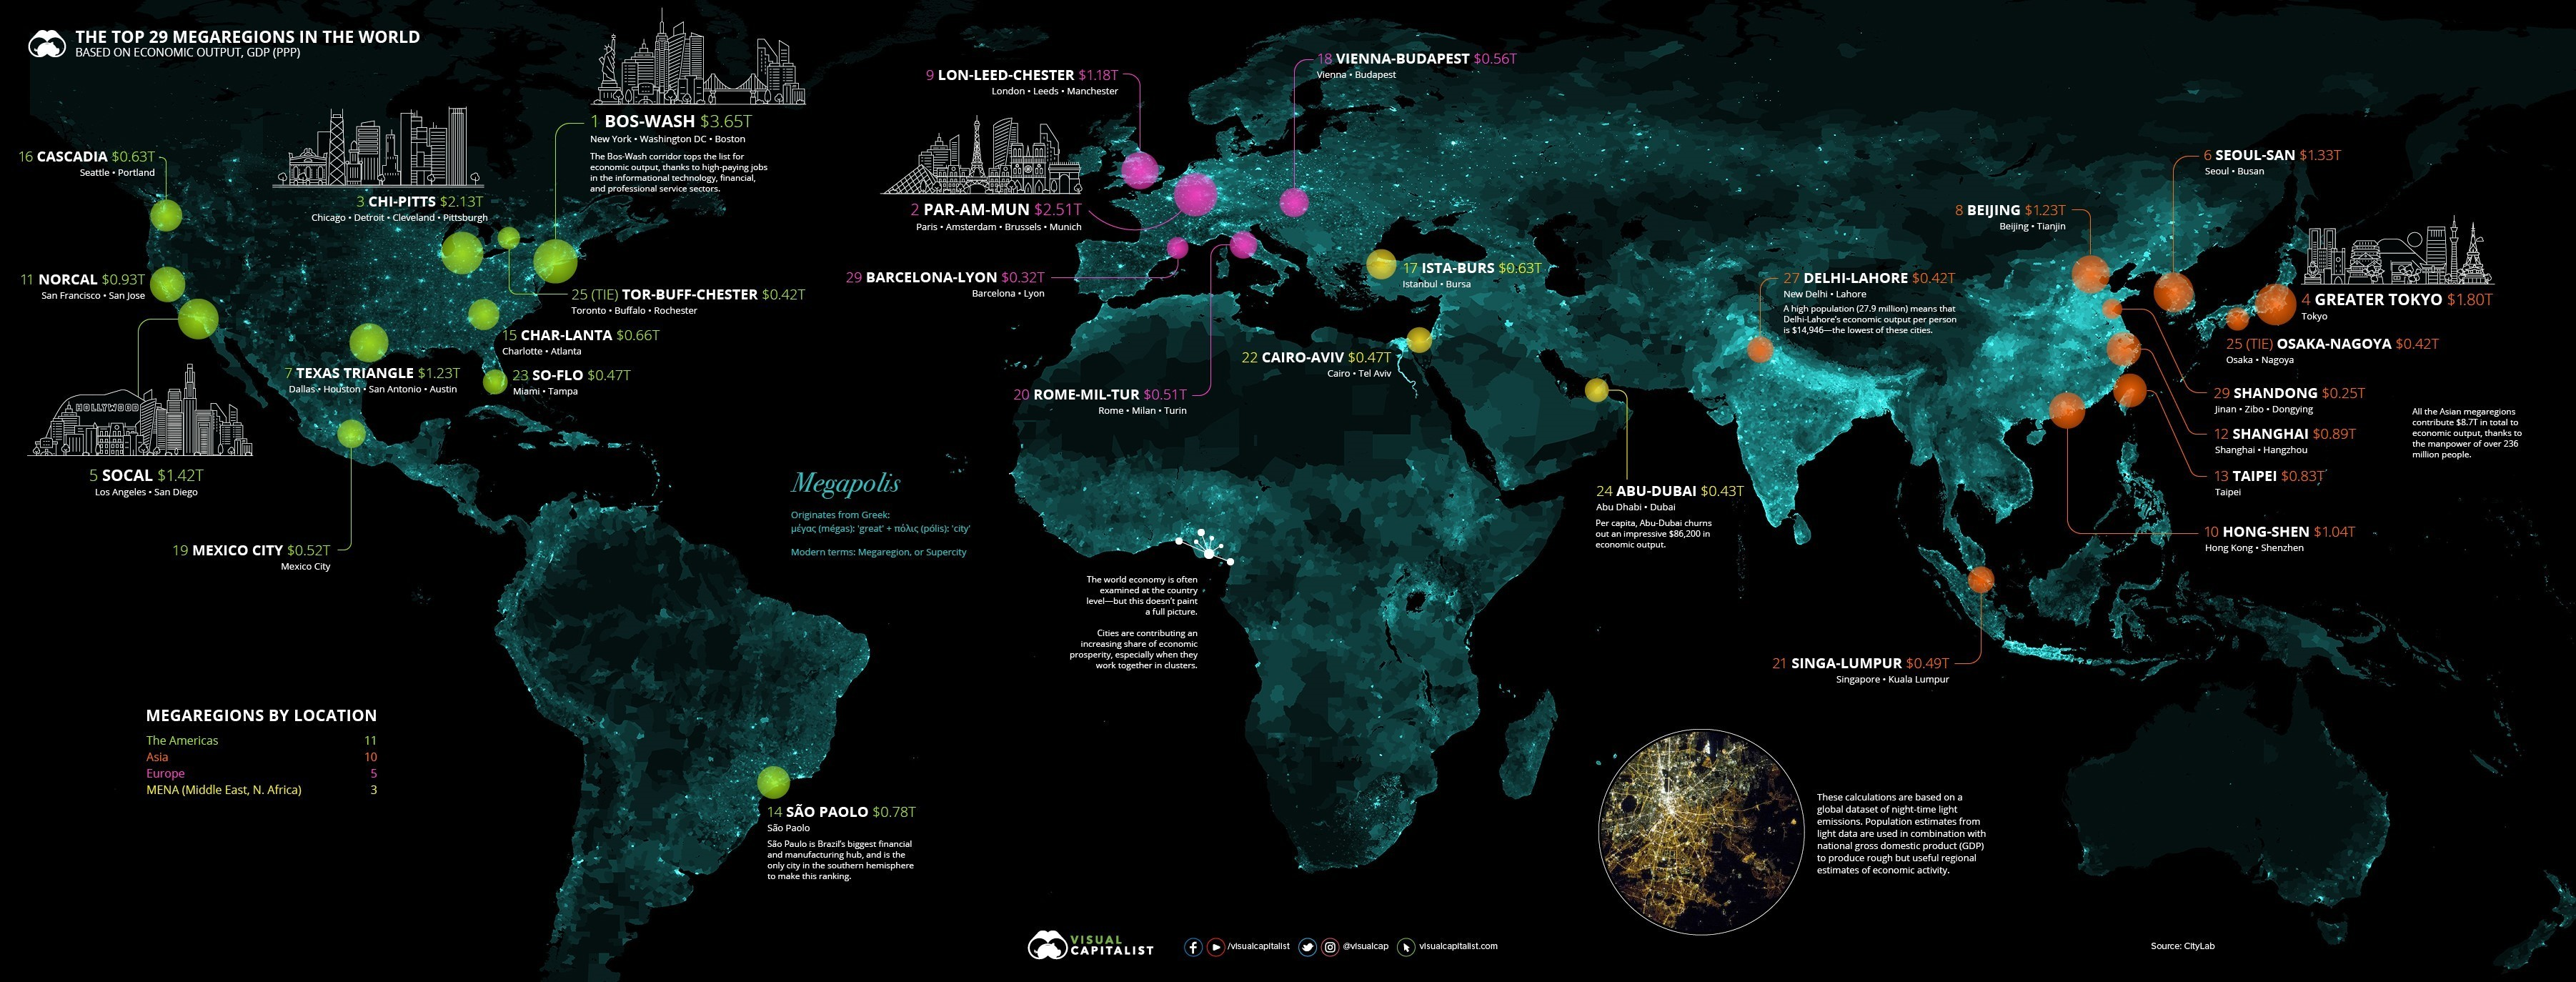 Supercities at the heart pf trade relations around the world